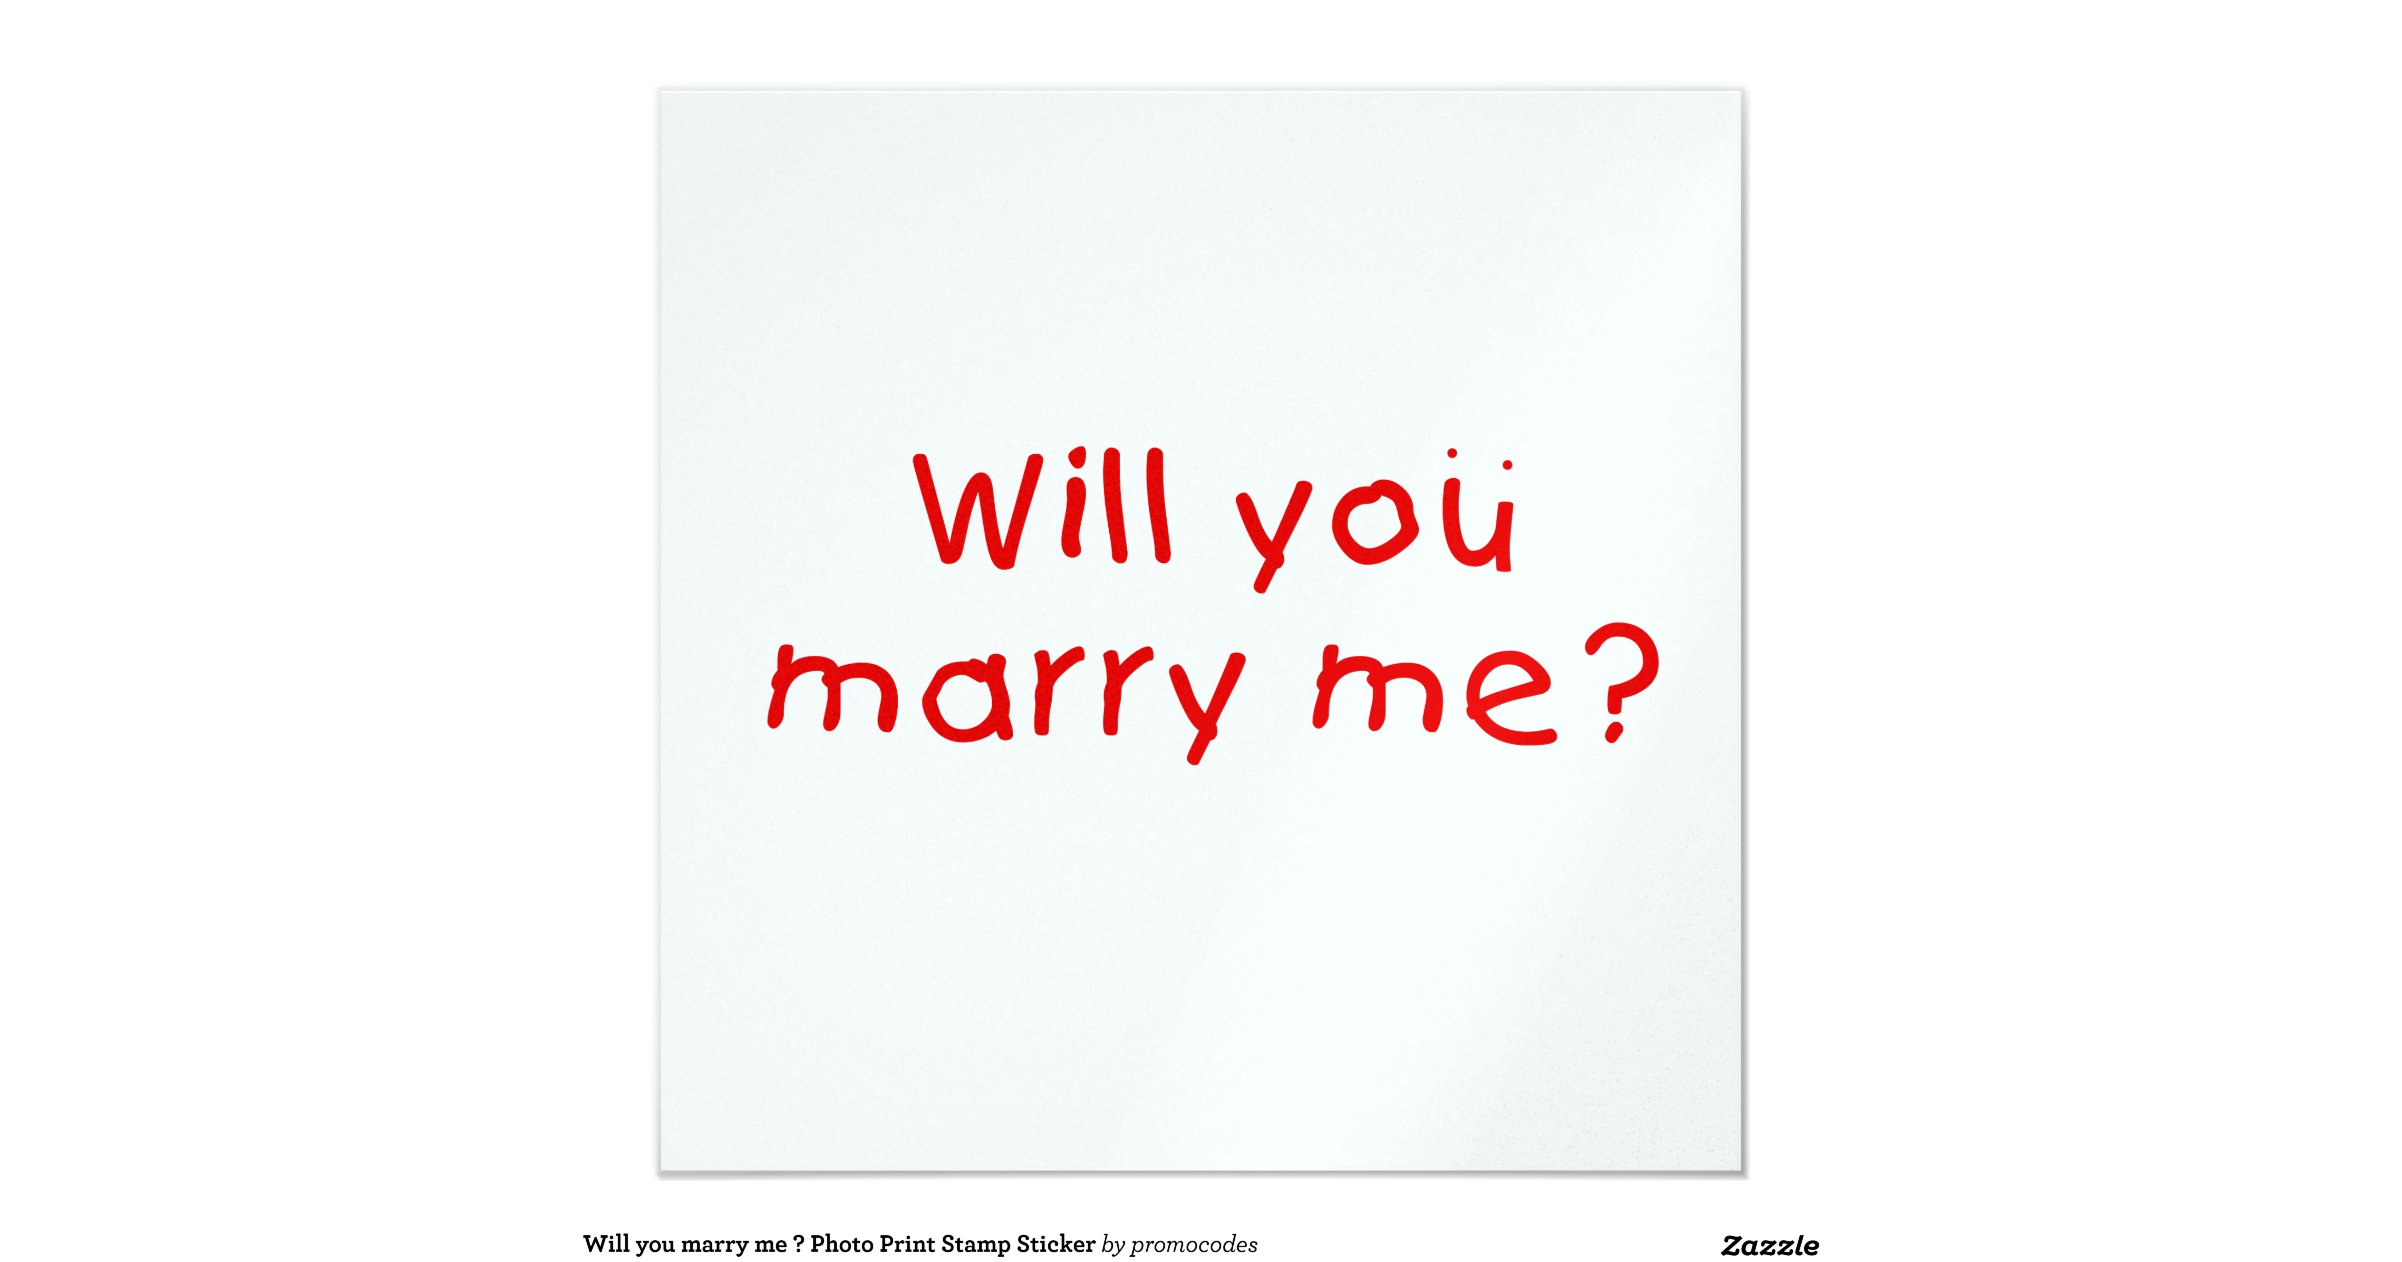 "Will you marry me ? Photo Print Stamp Sticker 5.25"" Square ..."